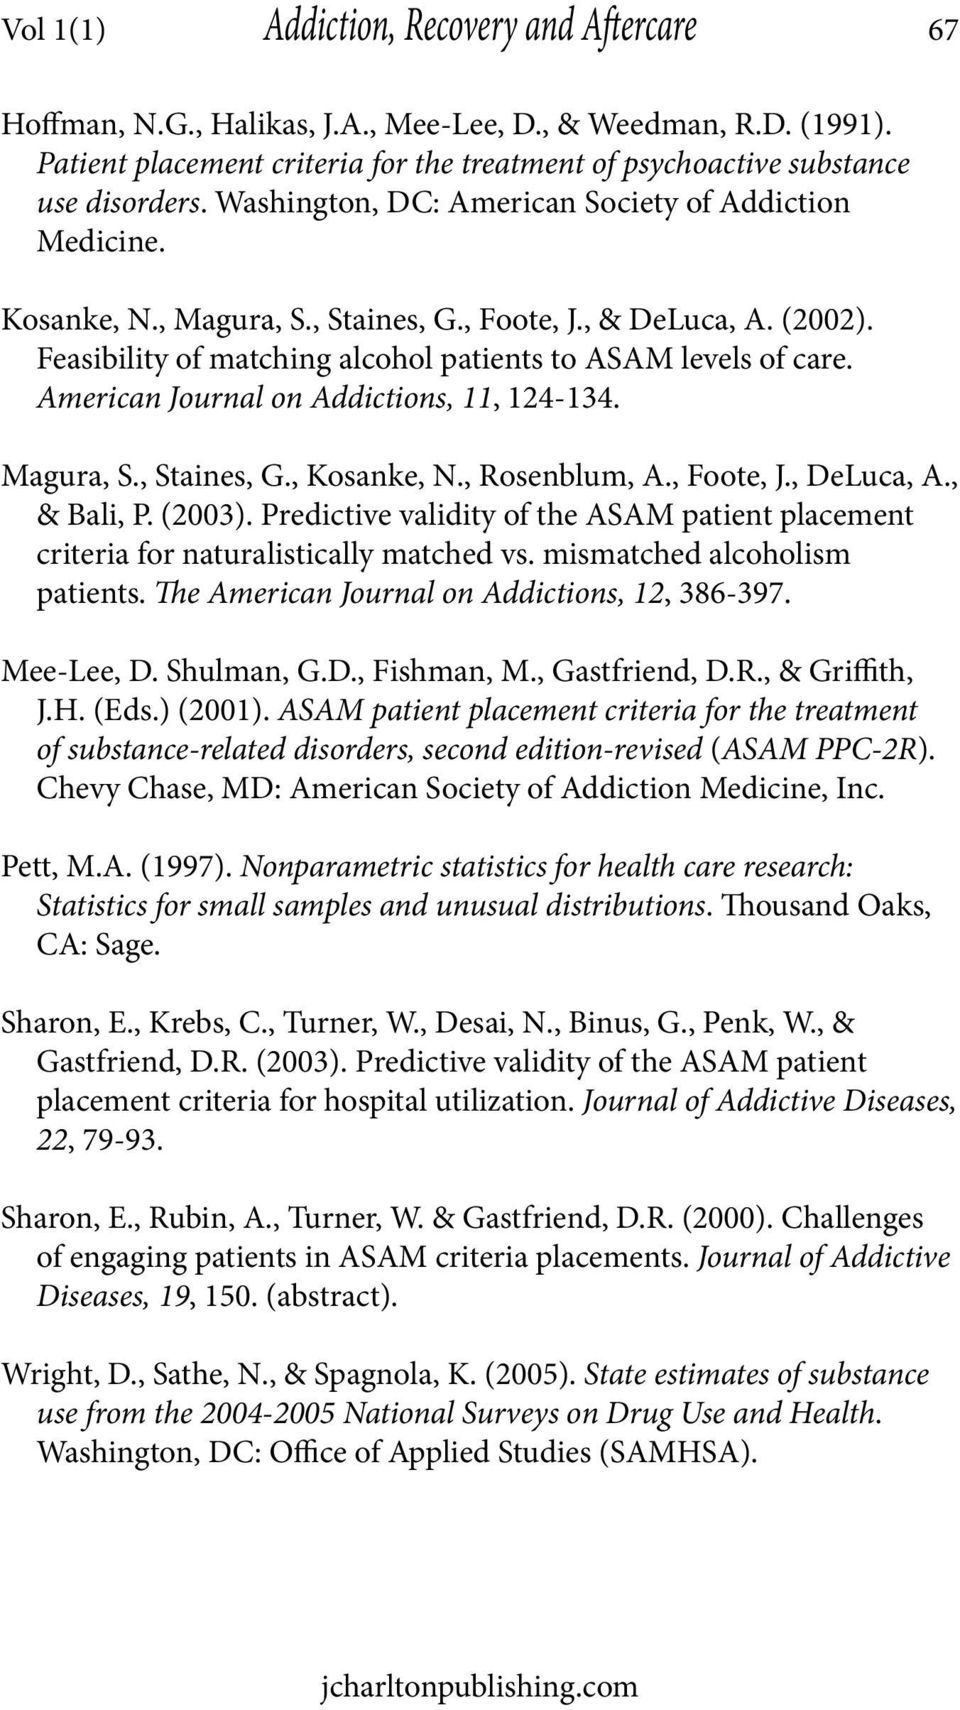 American Journal on Addictions, 11, 124-134. Magura, S., Staines, G., Kosanke, N., Rosenblum, A., Foote, J., DeLuca, A., & Bali, P. (2003).